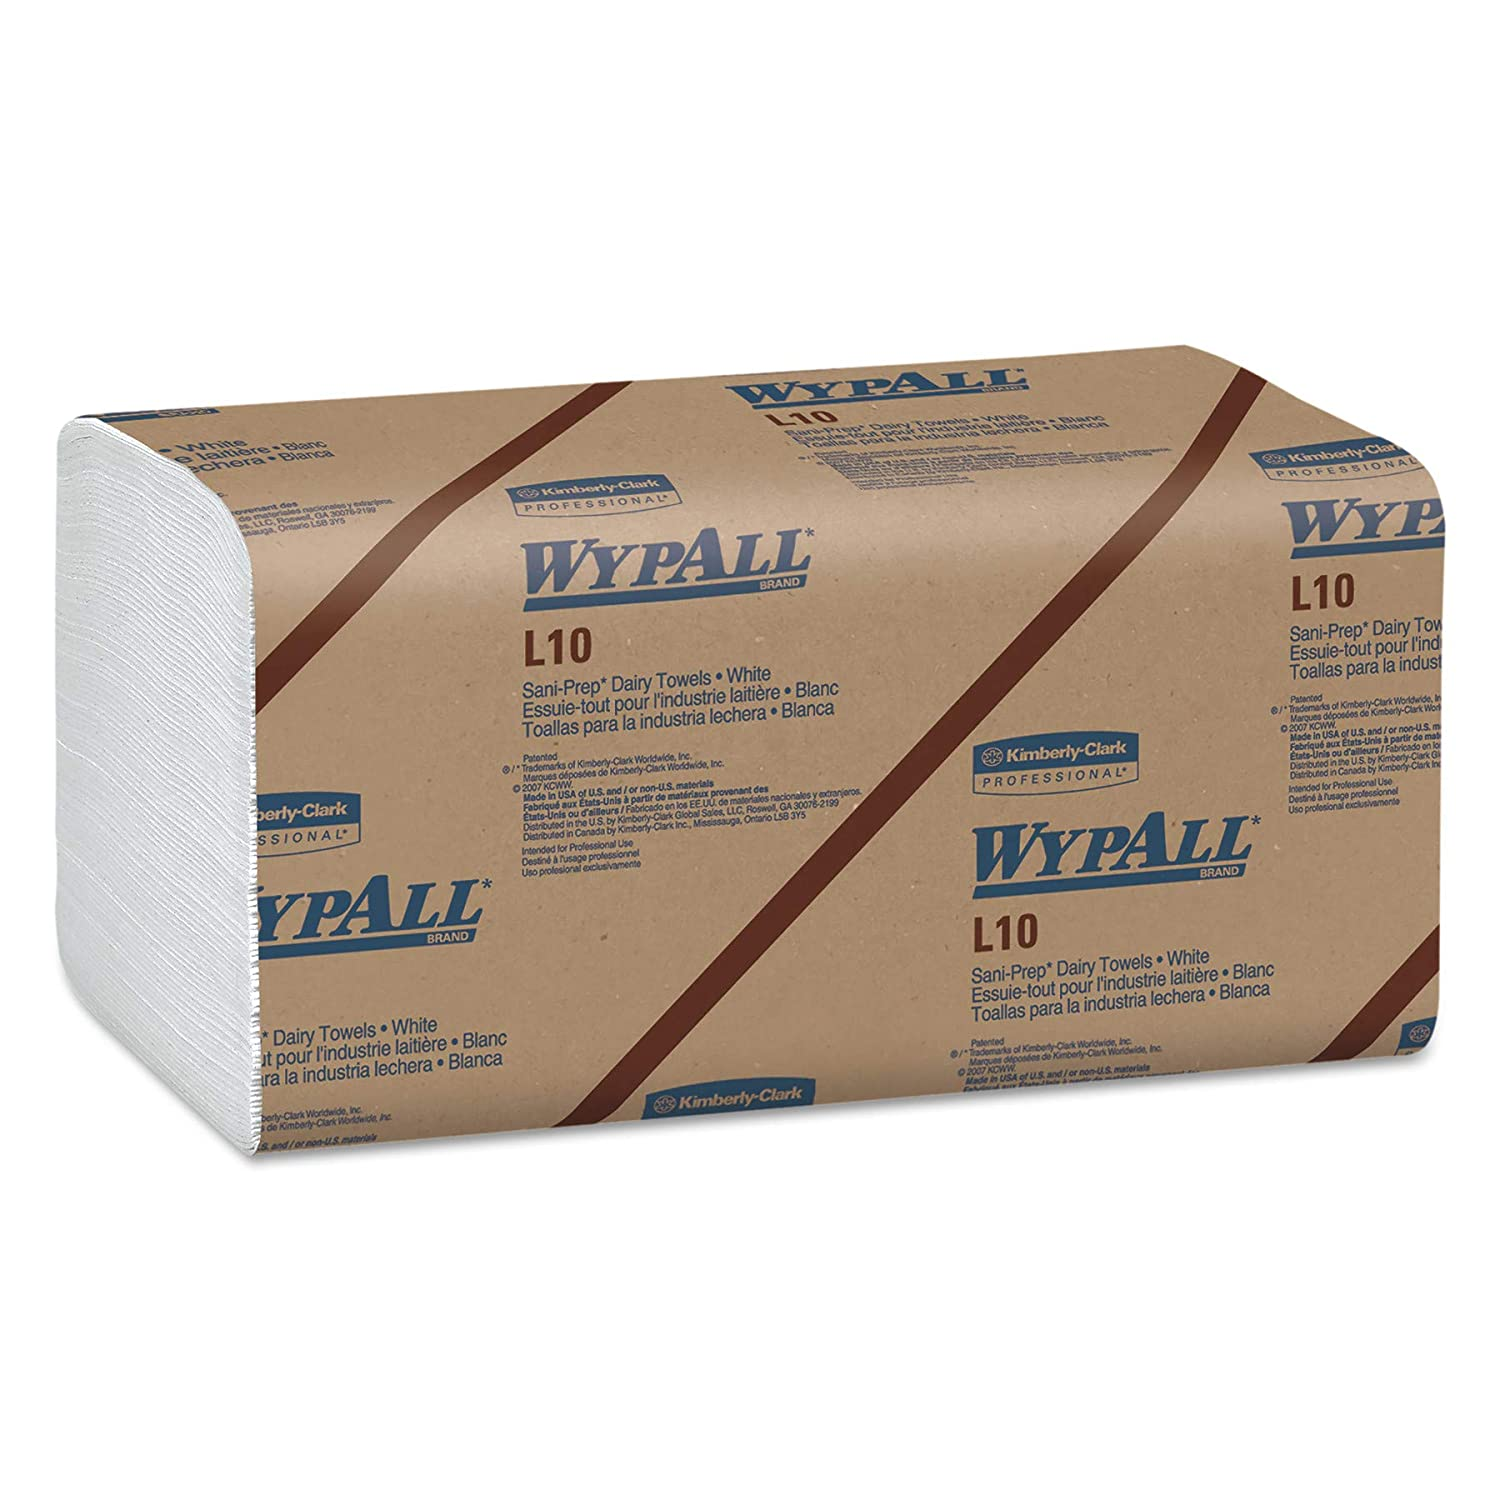 WypAll 01770 L10 SANI-PREP Dairy Towels, Banded, 1-Ply, 10 1/2 x 9 3/10, 200 per Pack (Case of 12 Packs)